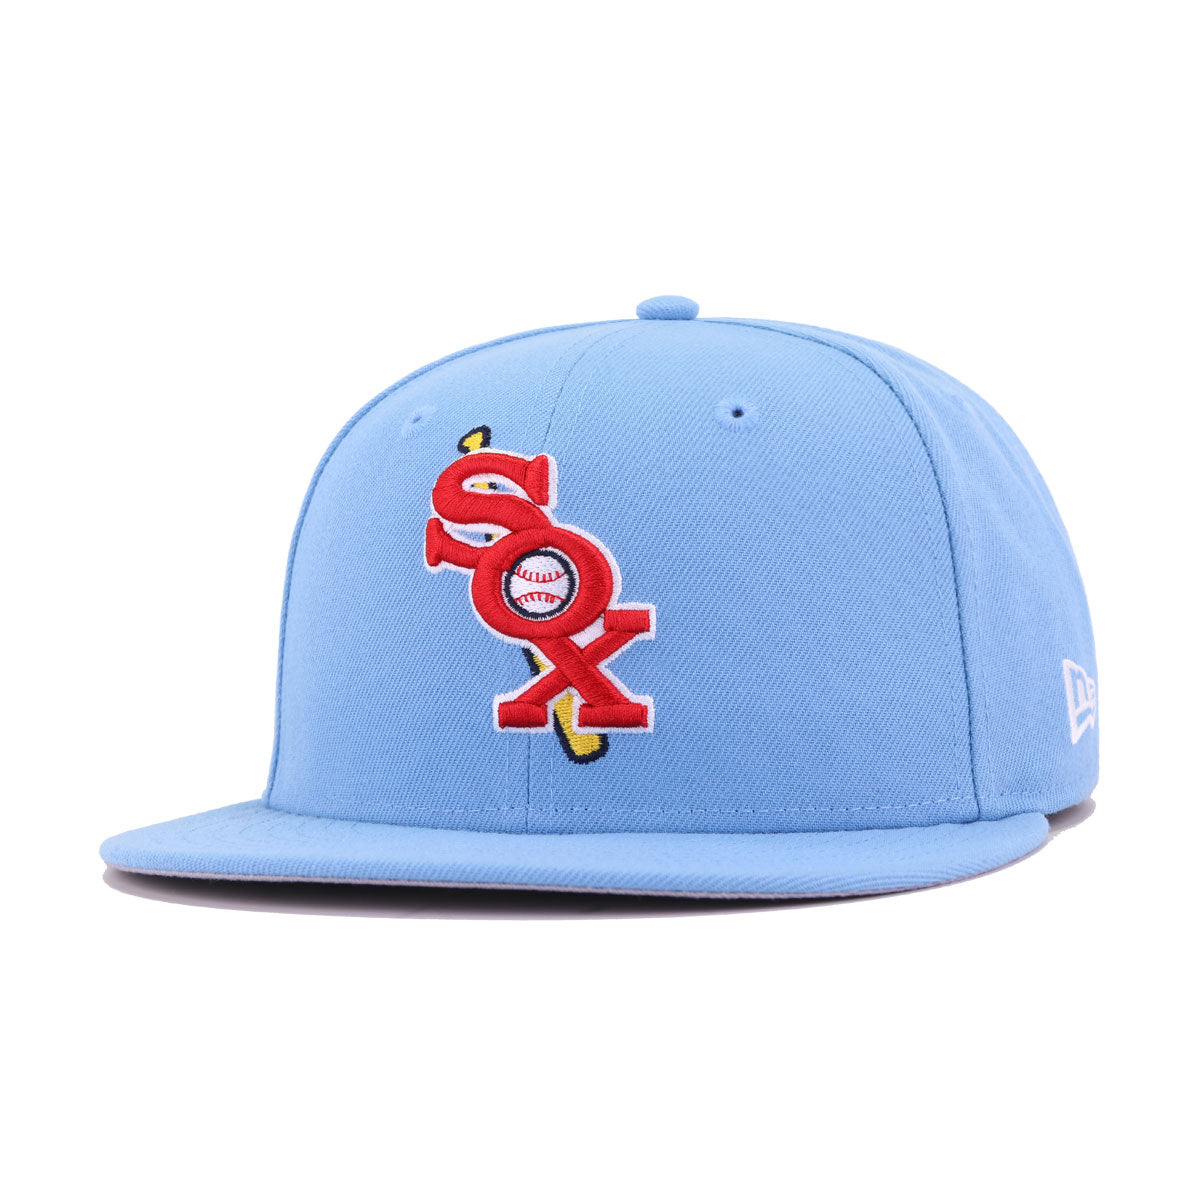 Chicago White Sox Sky Blue Cooperstown New Era 59Fifty Fitted